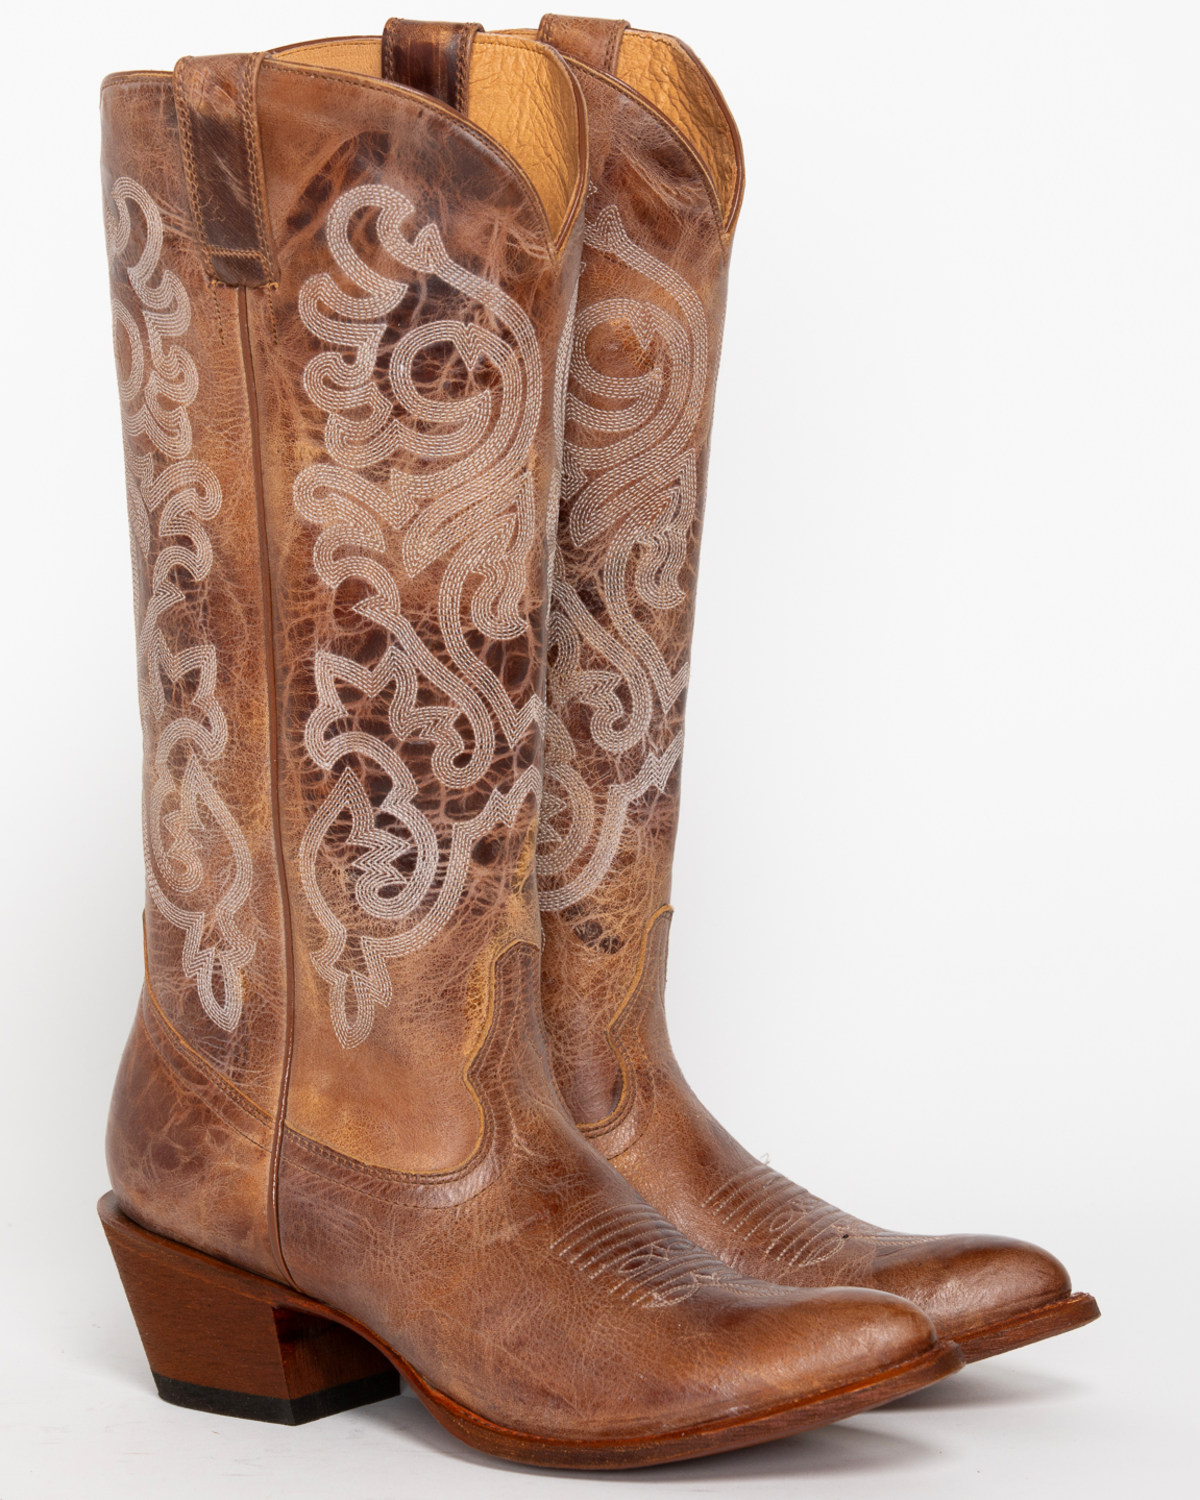 New Cowboy Boots Also Feature A Variety Of Toe Shapes  Pointed, Square And Round Allen Said That Most Men Go For The Rounded Toe, And Women Prefer Pointed Or Square Toes The Pointed Toe Actually Has No Practical Use, He Said I